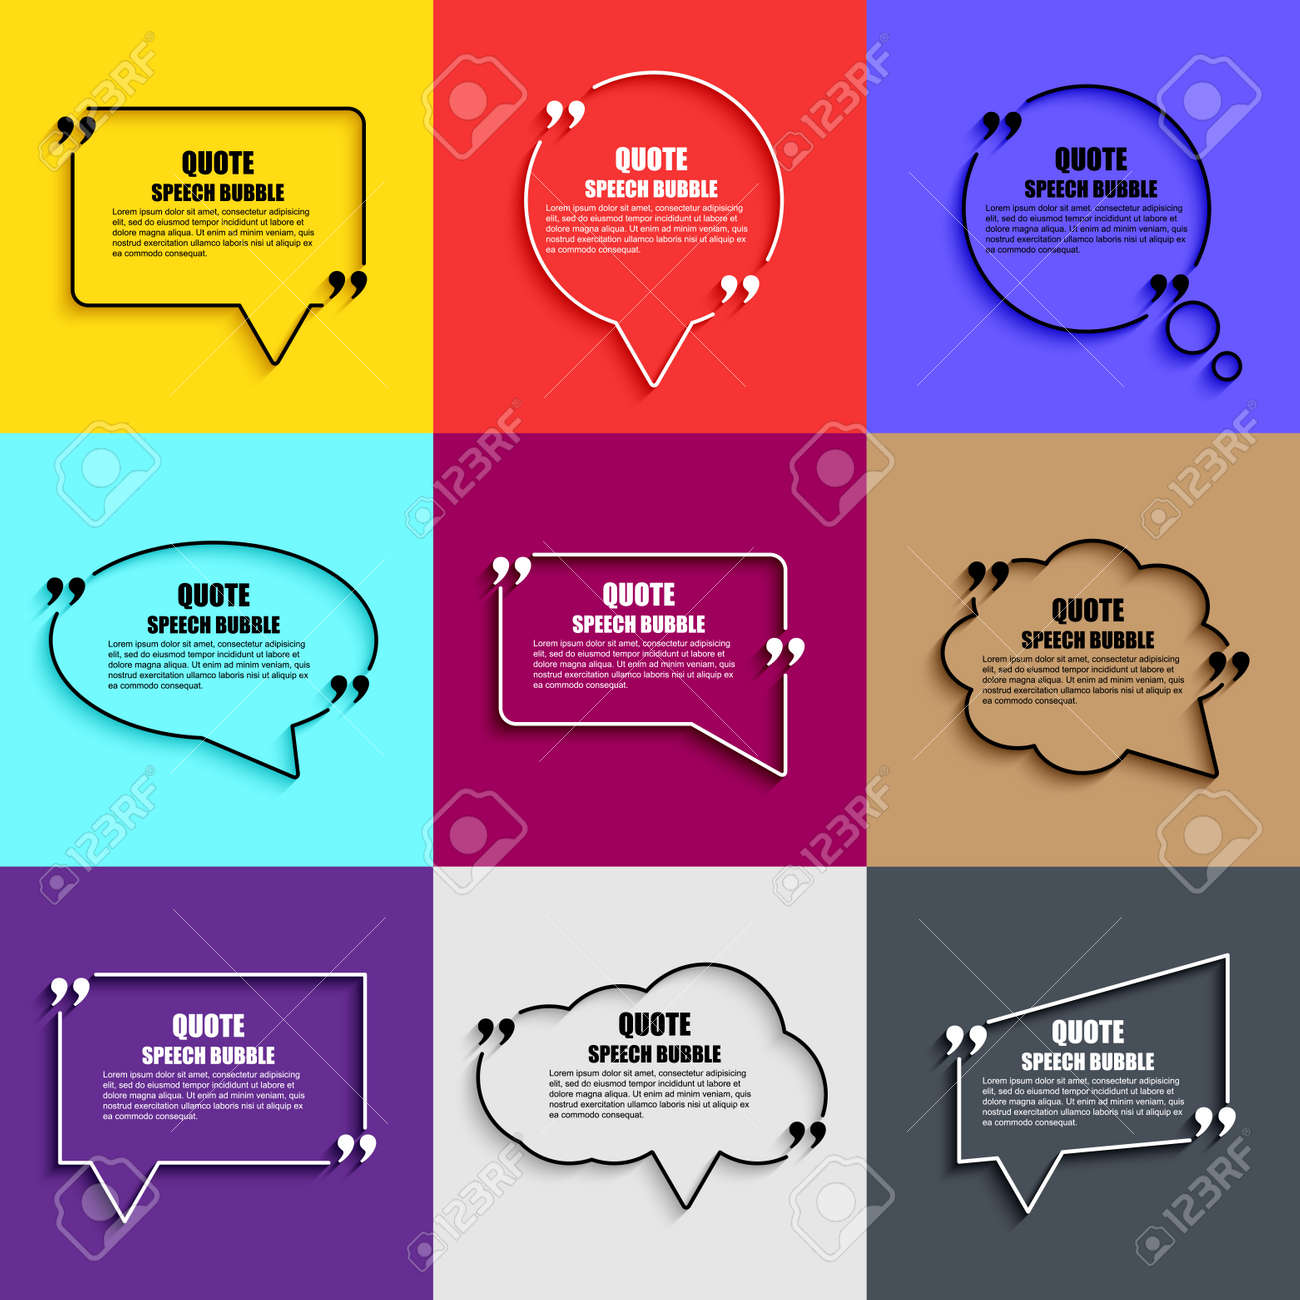 Quote Speech Bubble Vector Design Template Circle Business Card